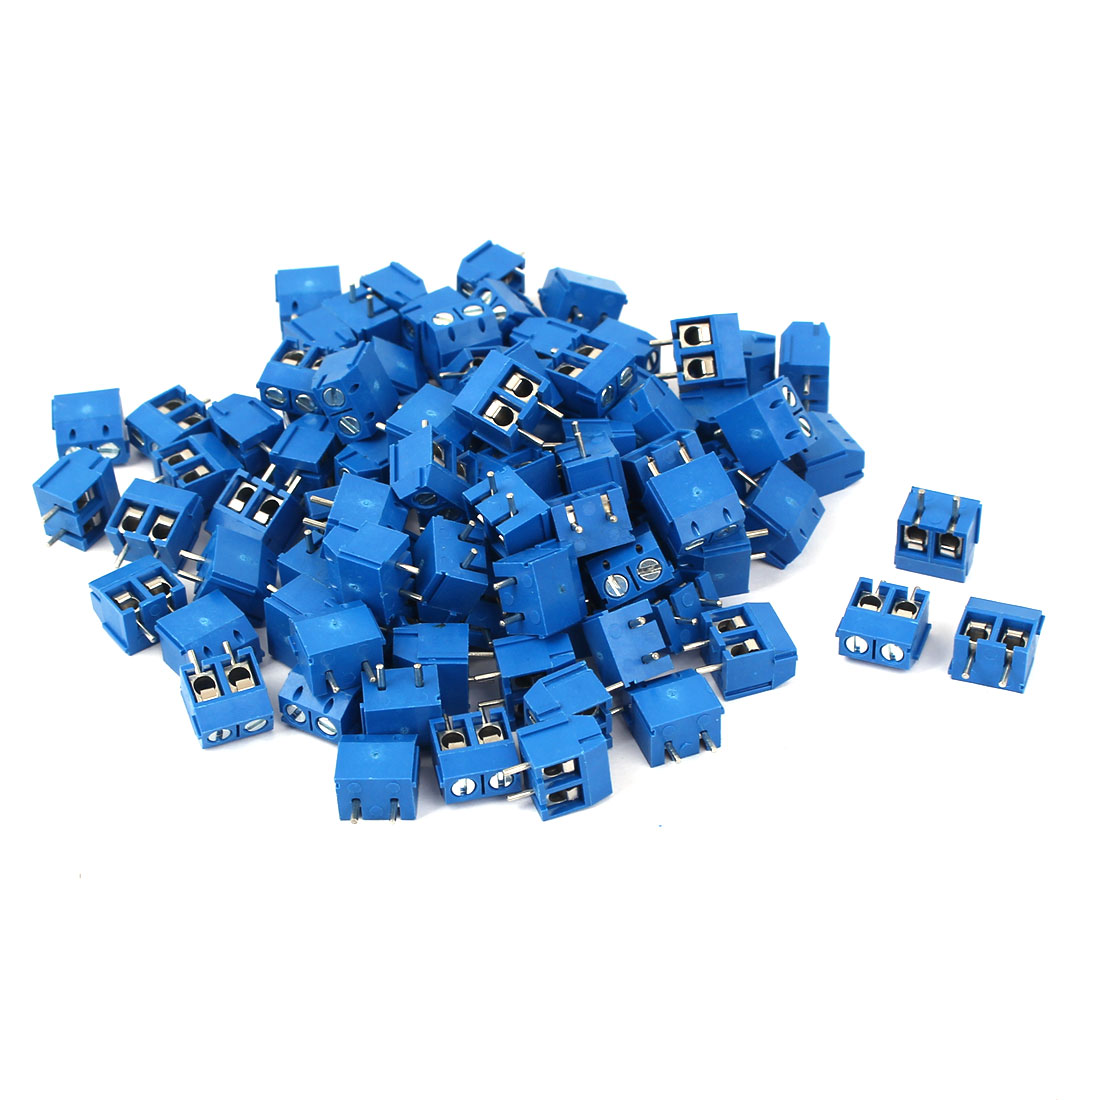 90Pcs 2 Way 2P PCB Mount Screw Terminal Block Connector 5mm Pitch